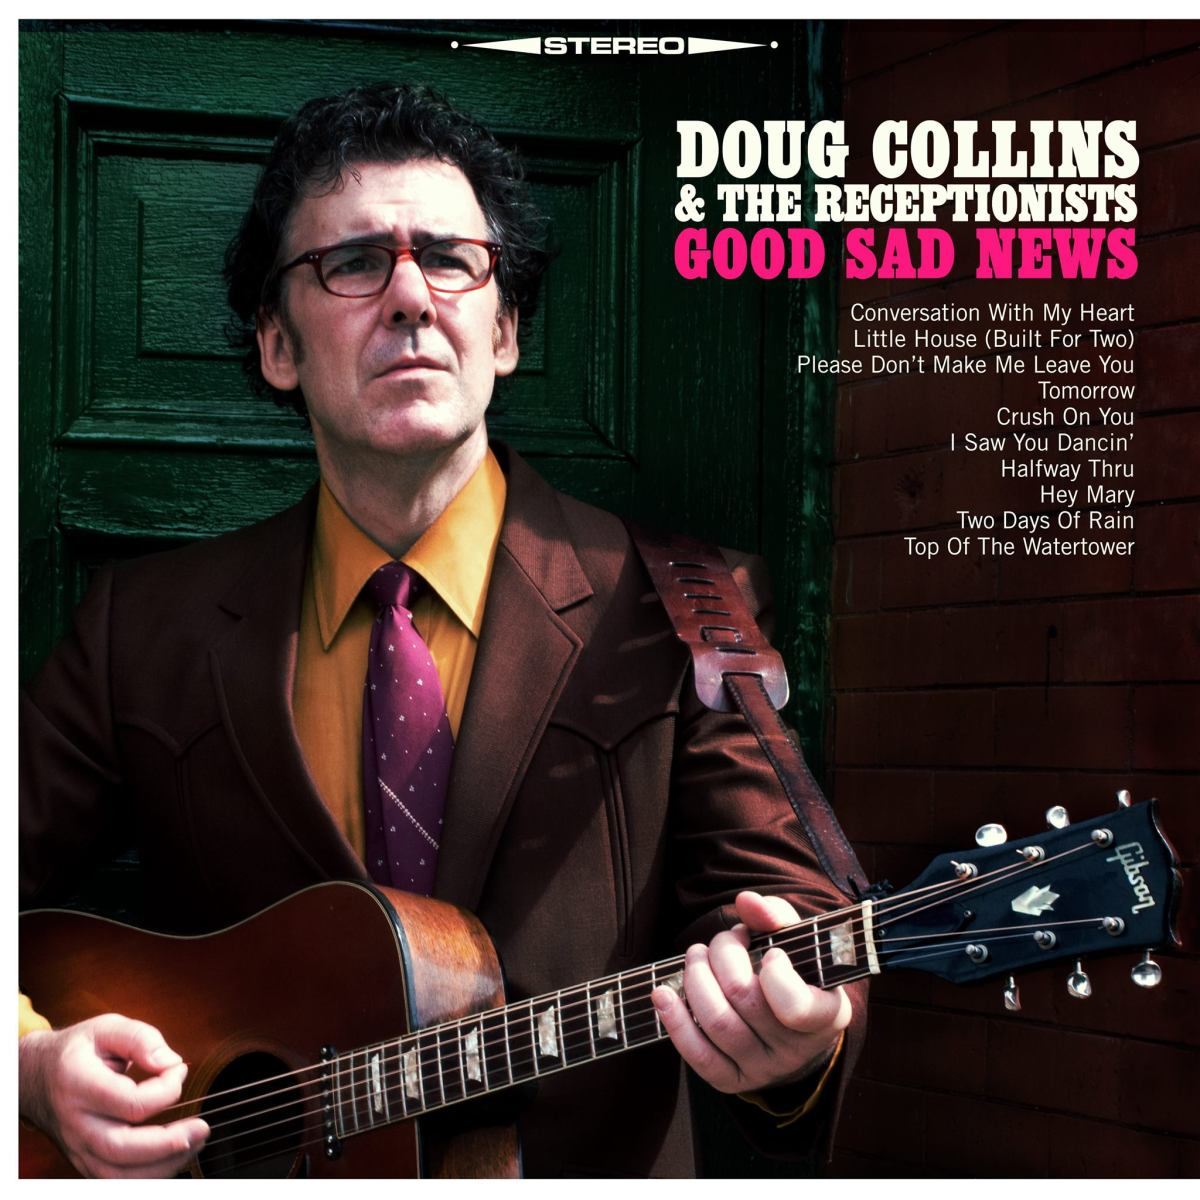 Good Sad News - Doug Collins and the Receptionists (reviewed by T. Bebedor)